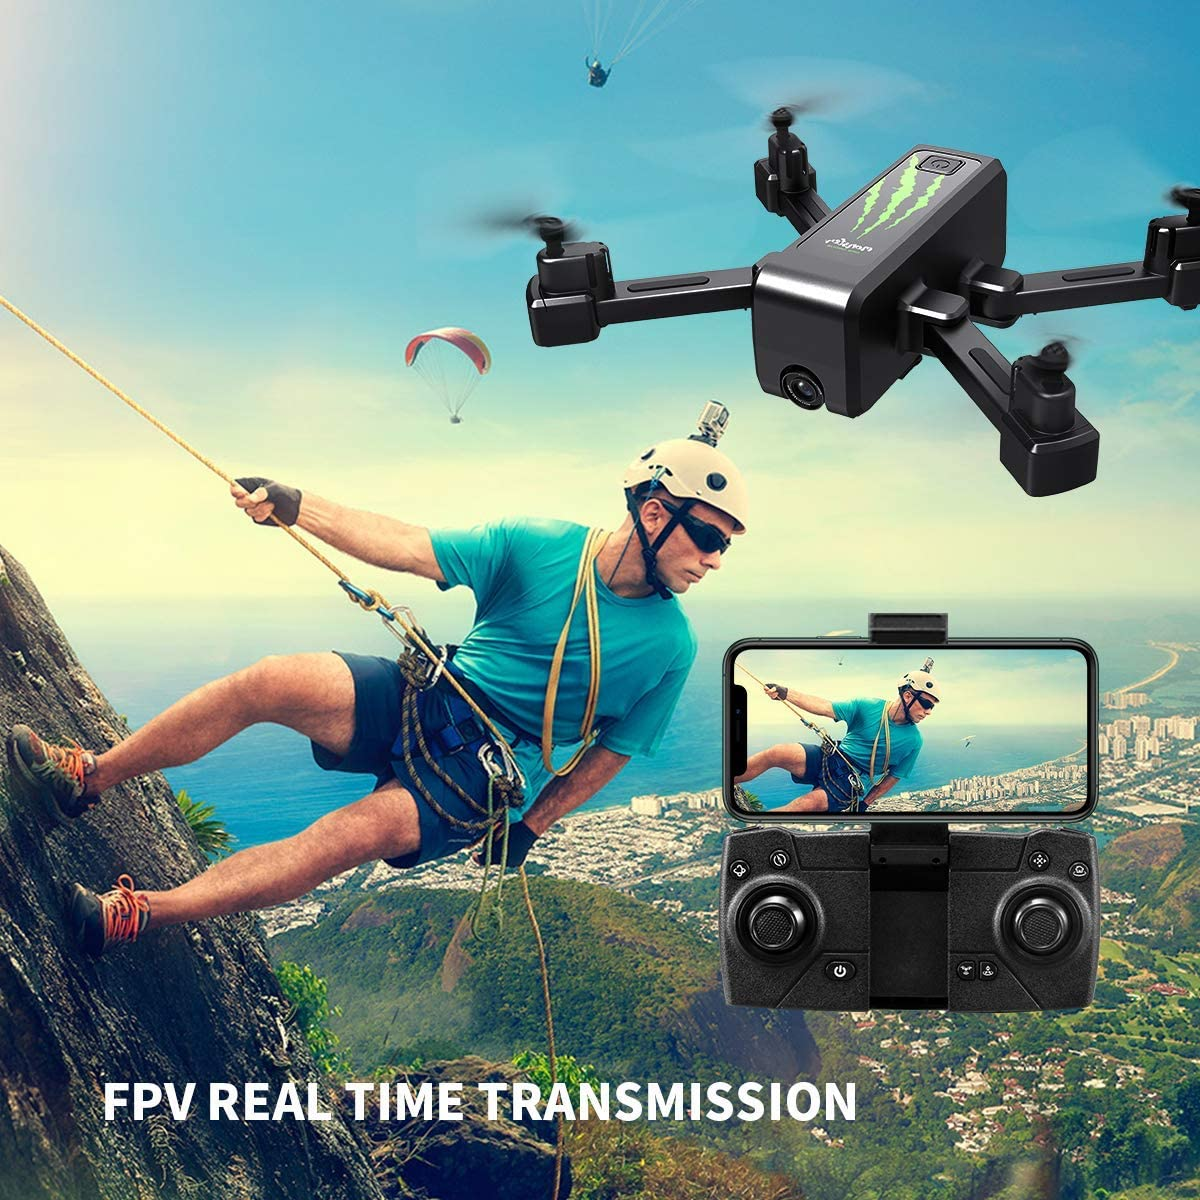 HR H5 GPS Drone with Camer,1080p HD Camera,Foldable Portable Quadcopter with Auto Return Home,Custom Flight Path,Follow Me,Drone for Beginners